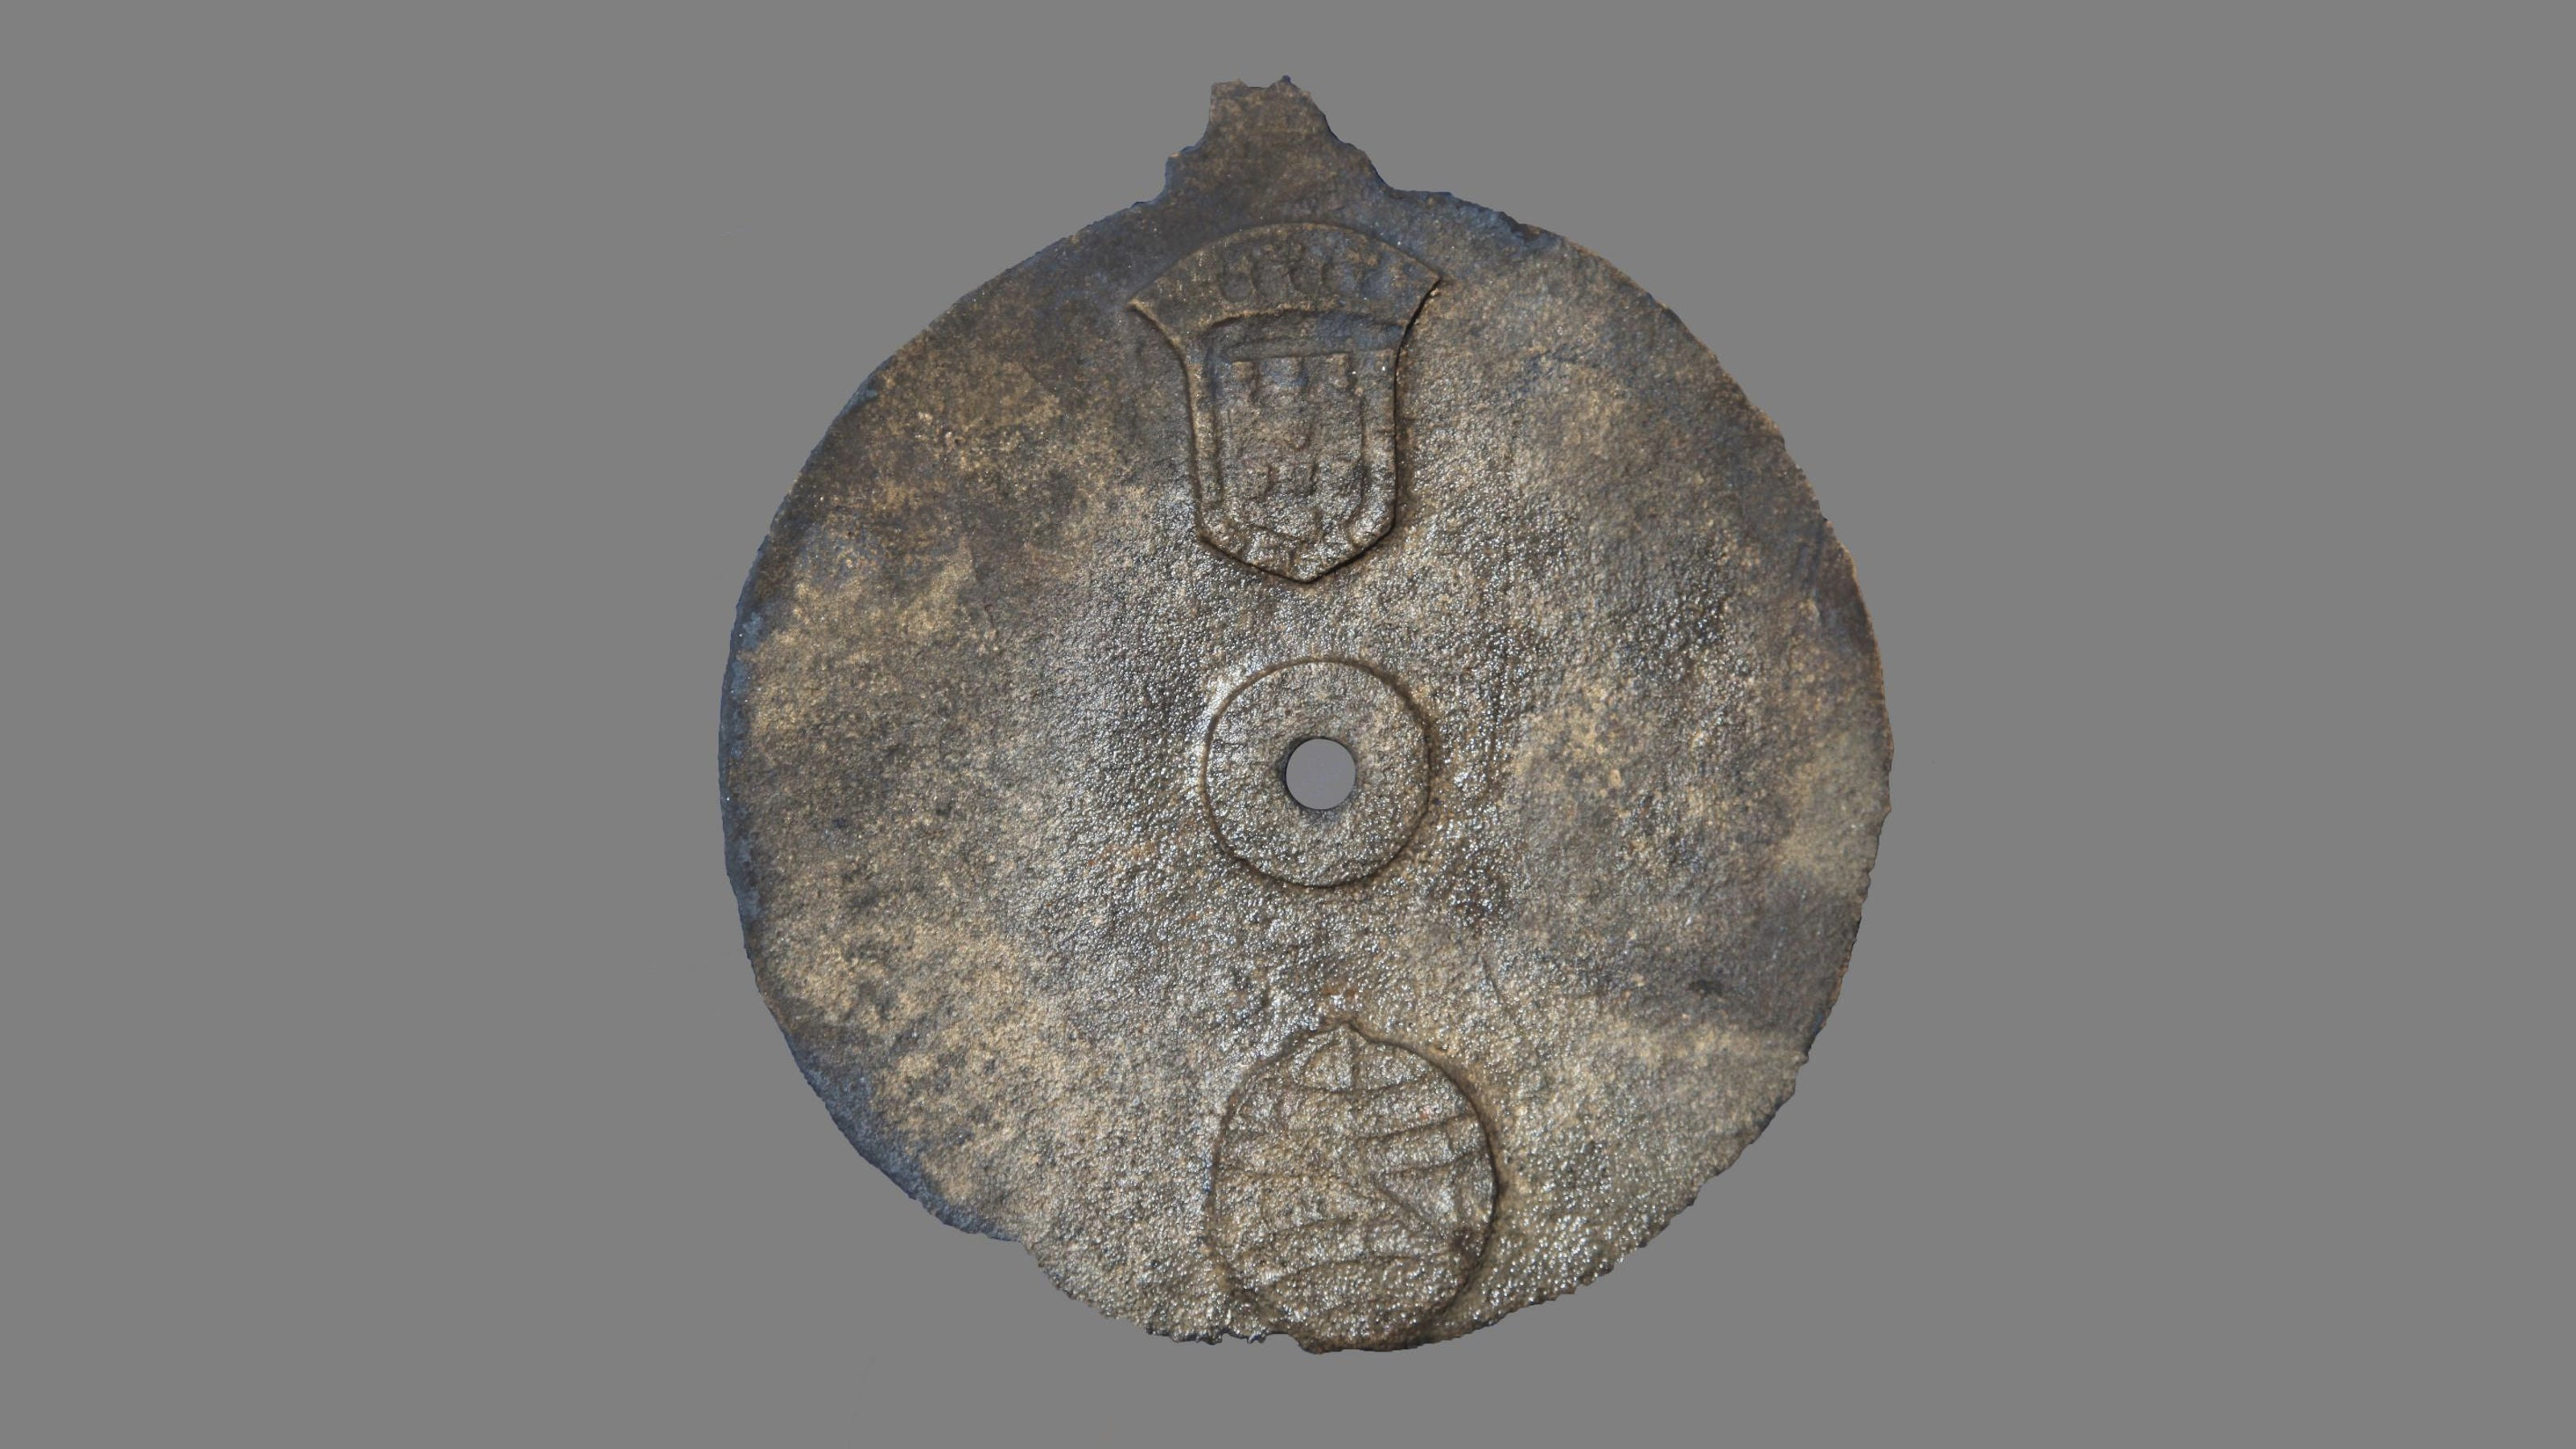 New Analysis Confirms Oldest Mariner's Astrolabe Ever Found